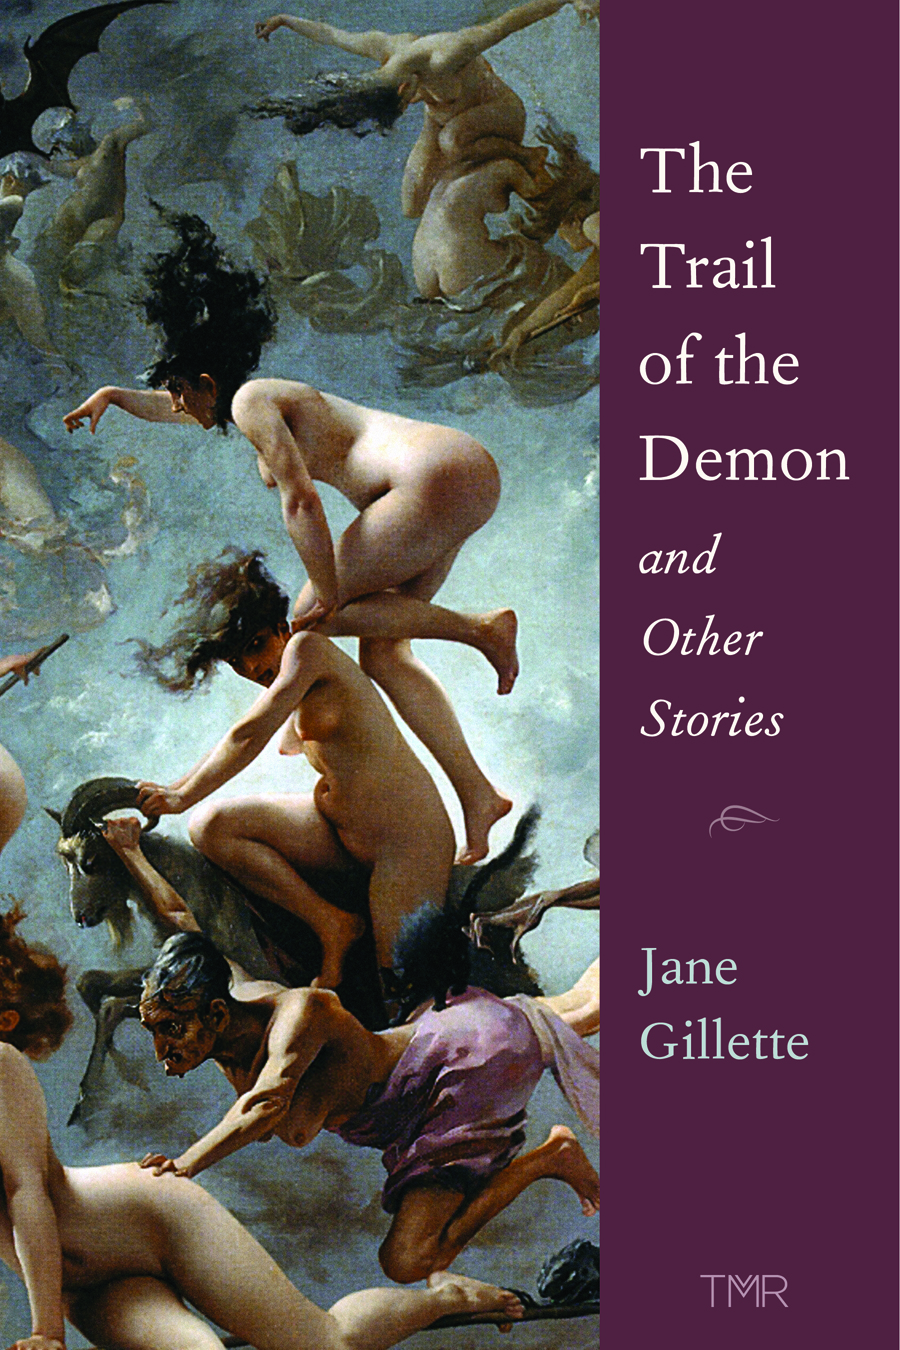 The Trail of the Demon and Other Stories